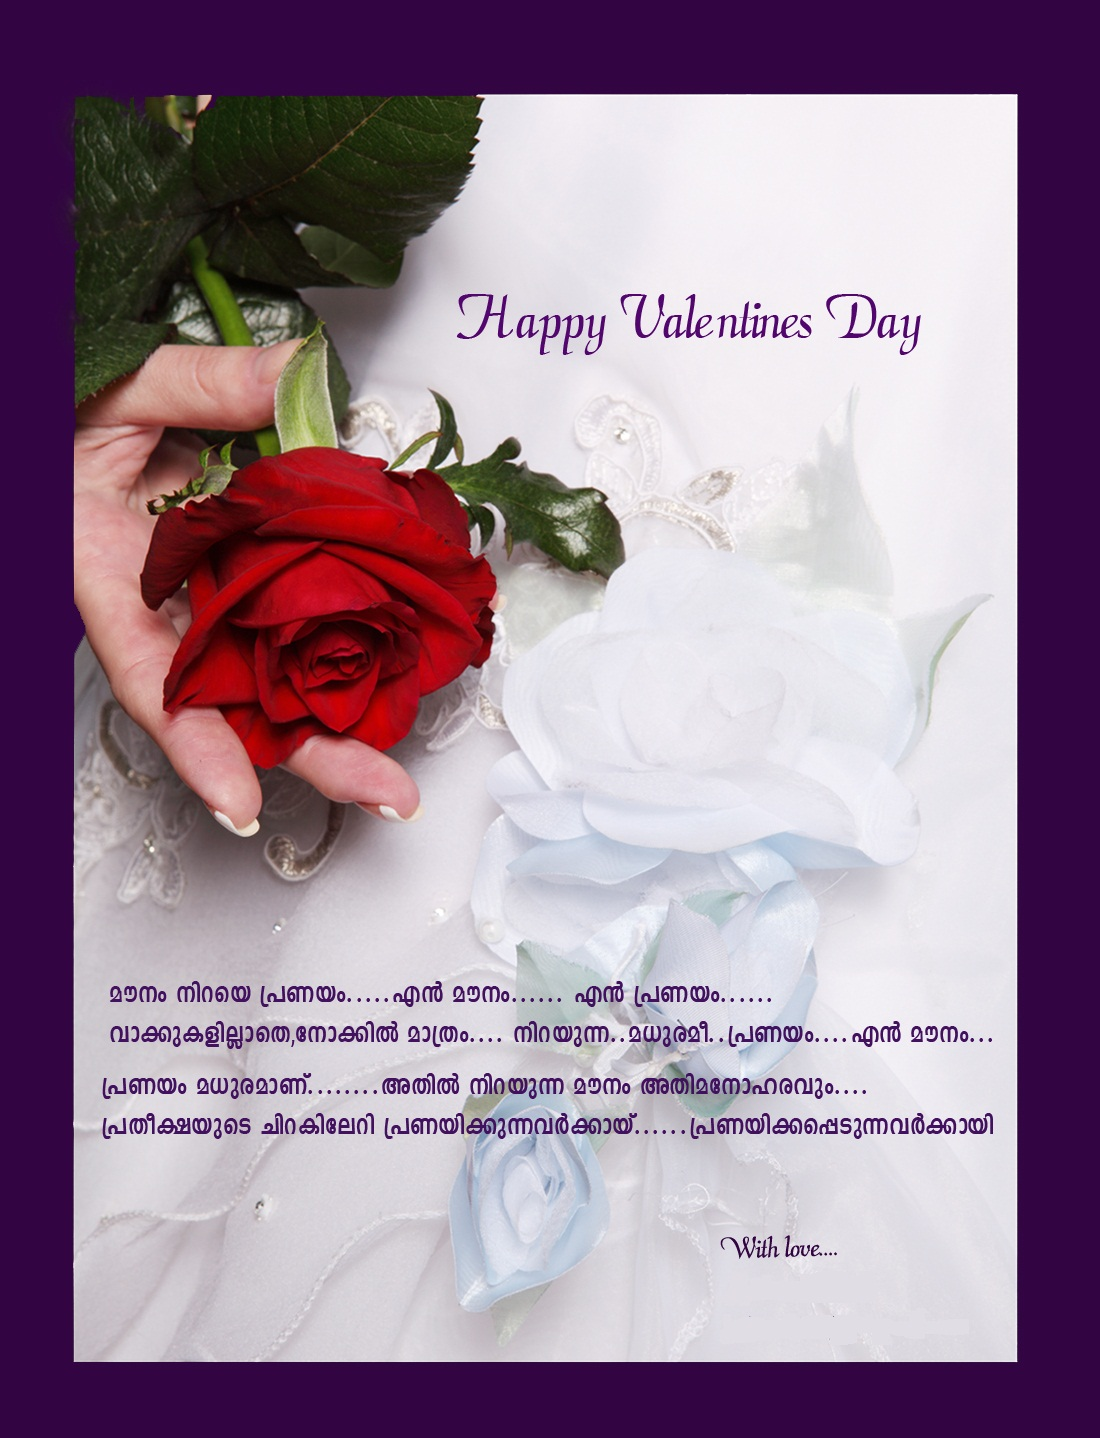 Happy Valentines' Day in advance.....